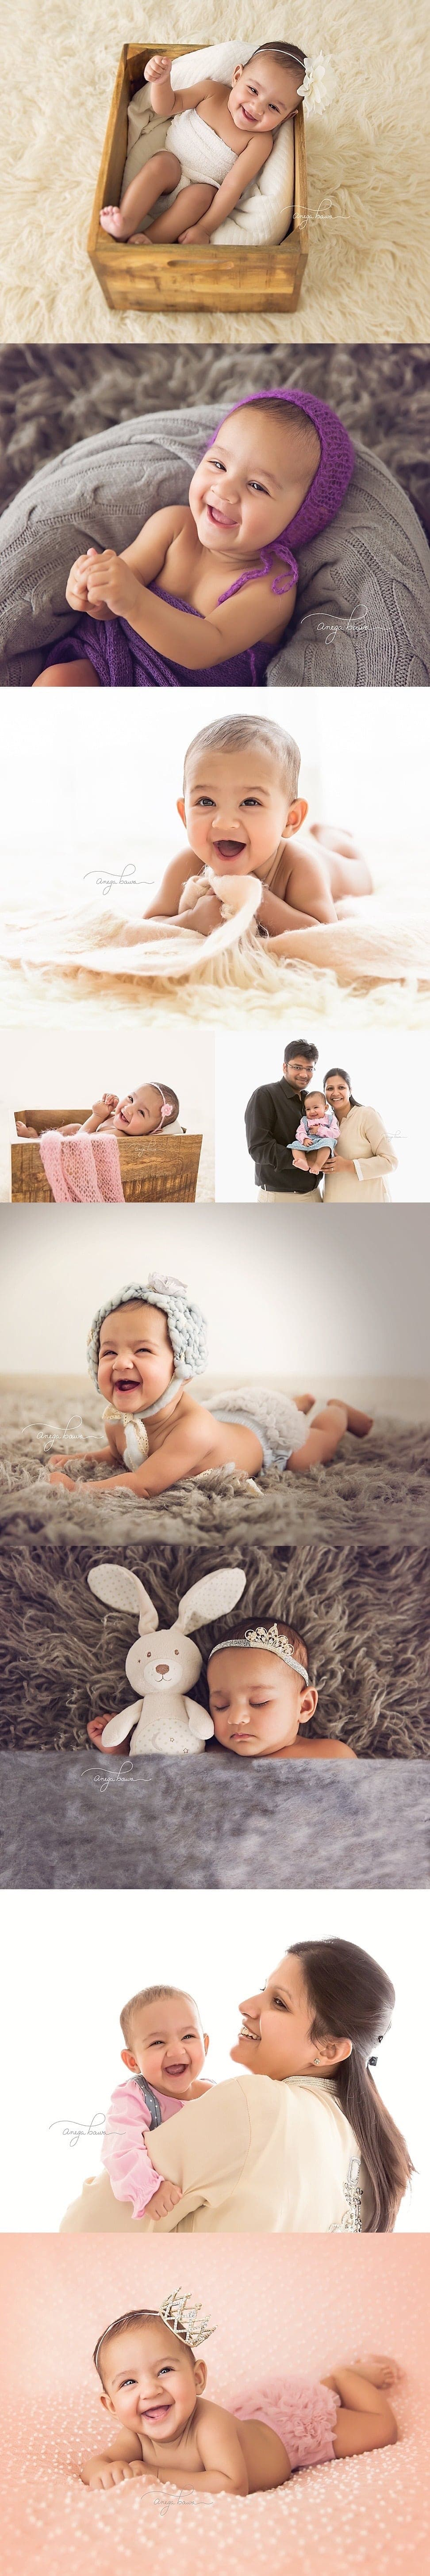 Baby Photographer in India - Session of 4-months old girl